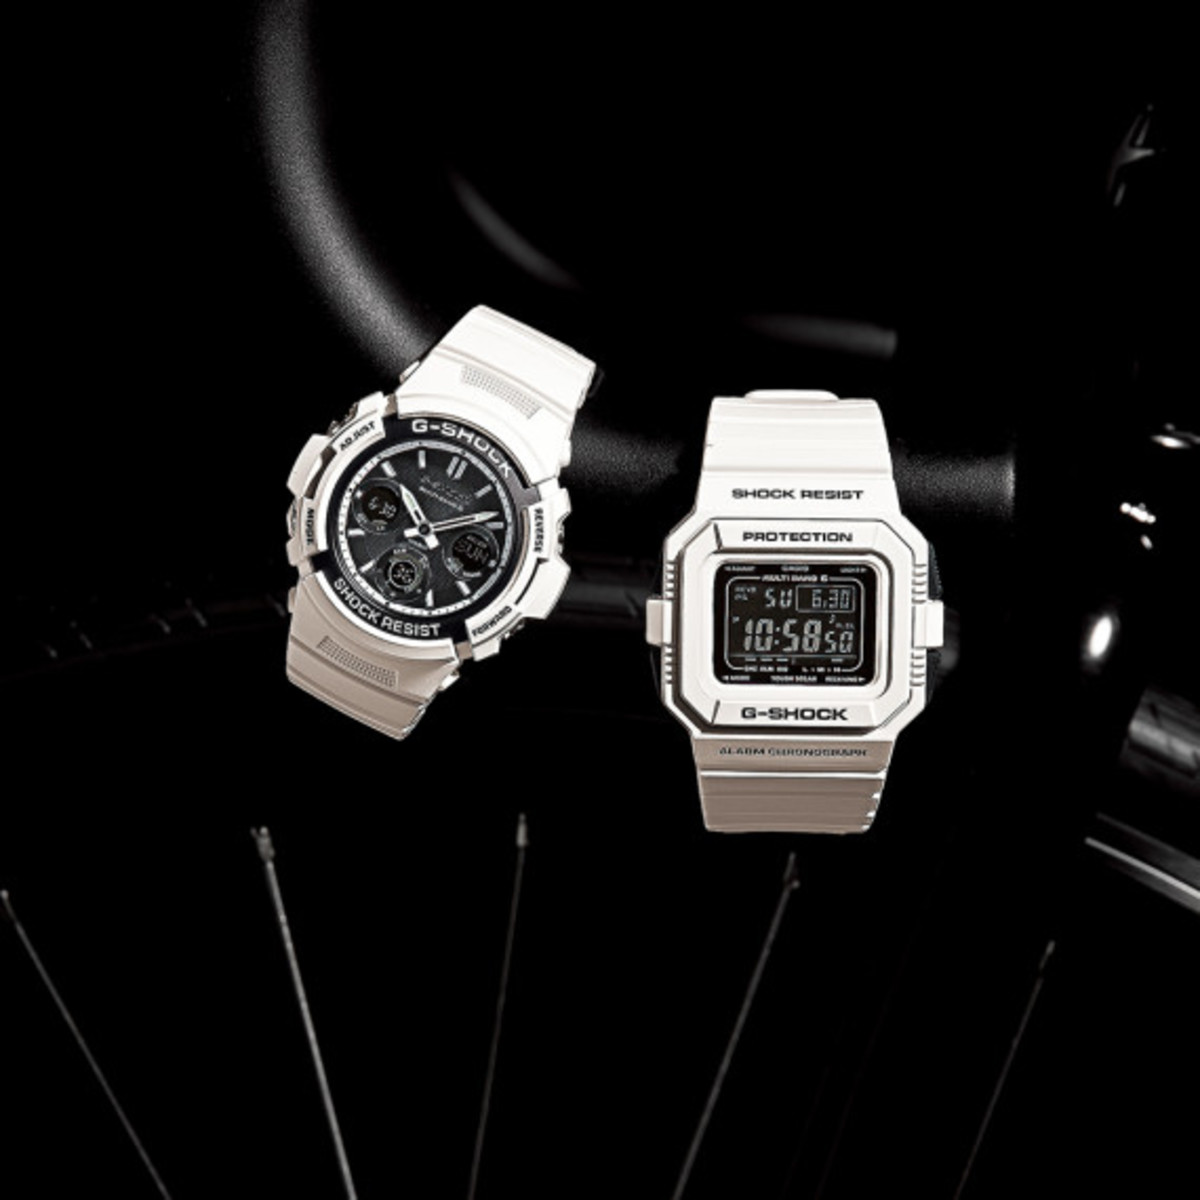 casio-g-shock-white-and-black-series-01